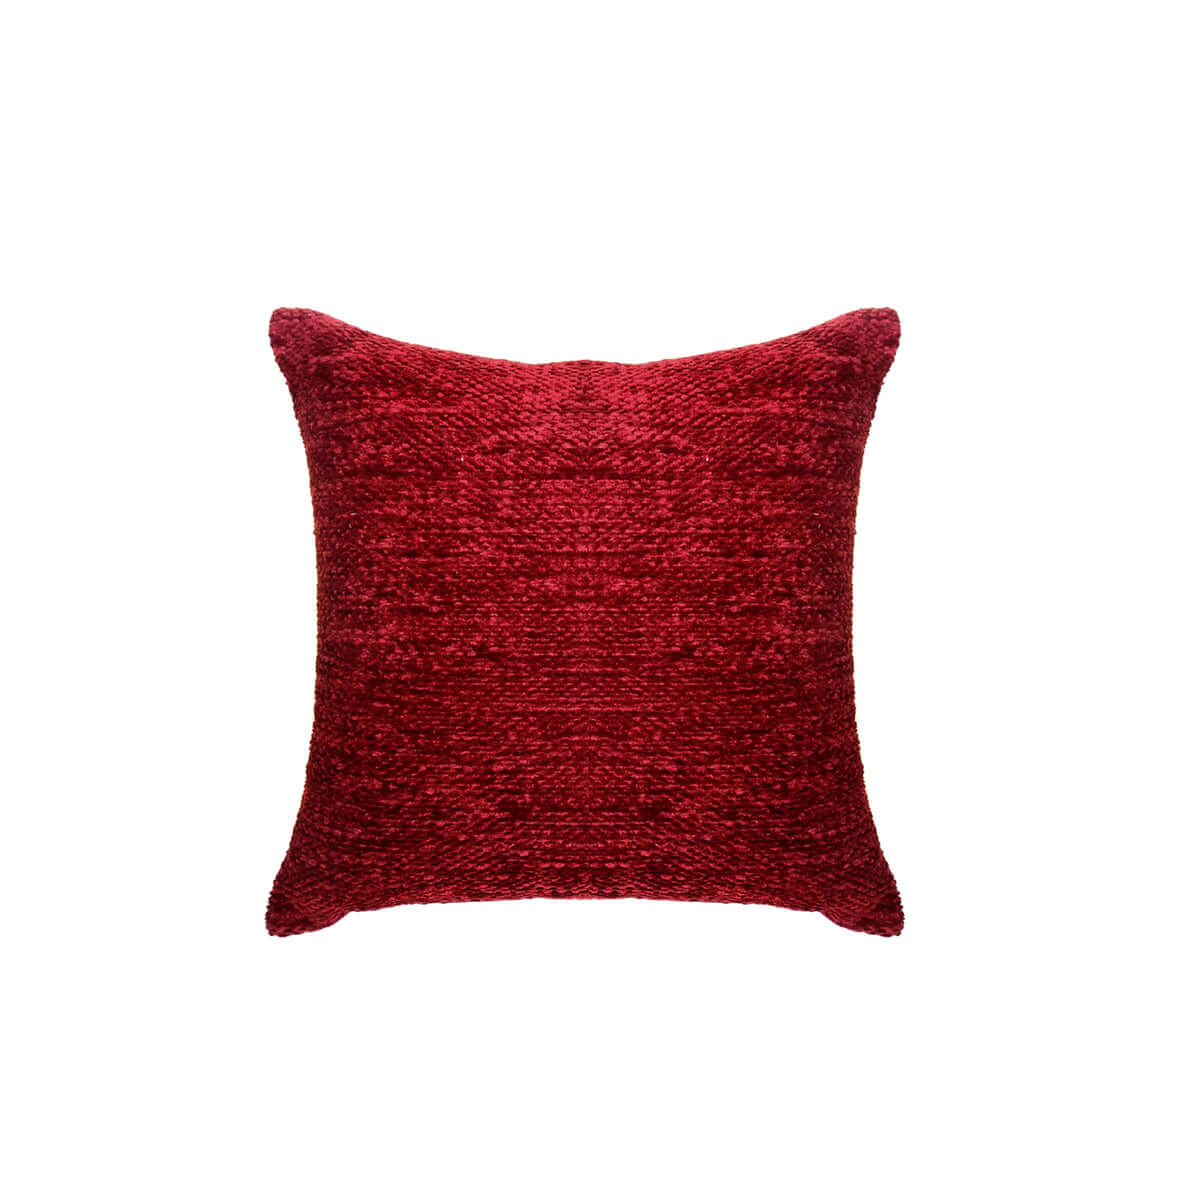 Loucas Red Cushion Cover